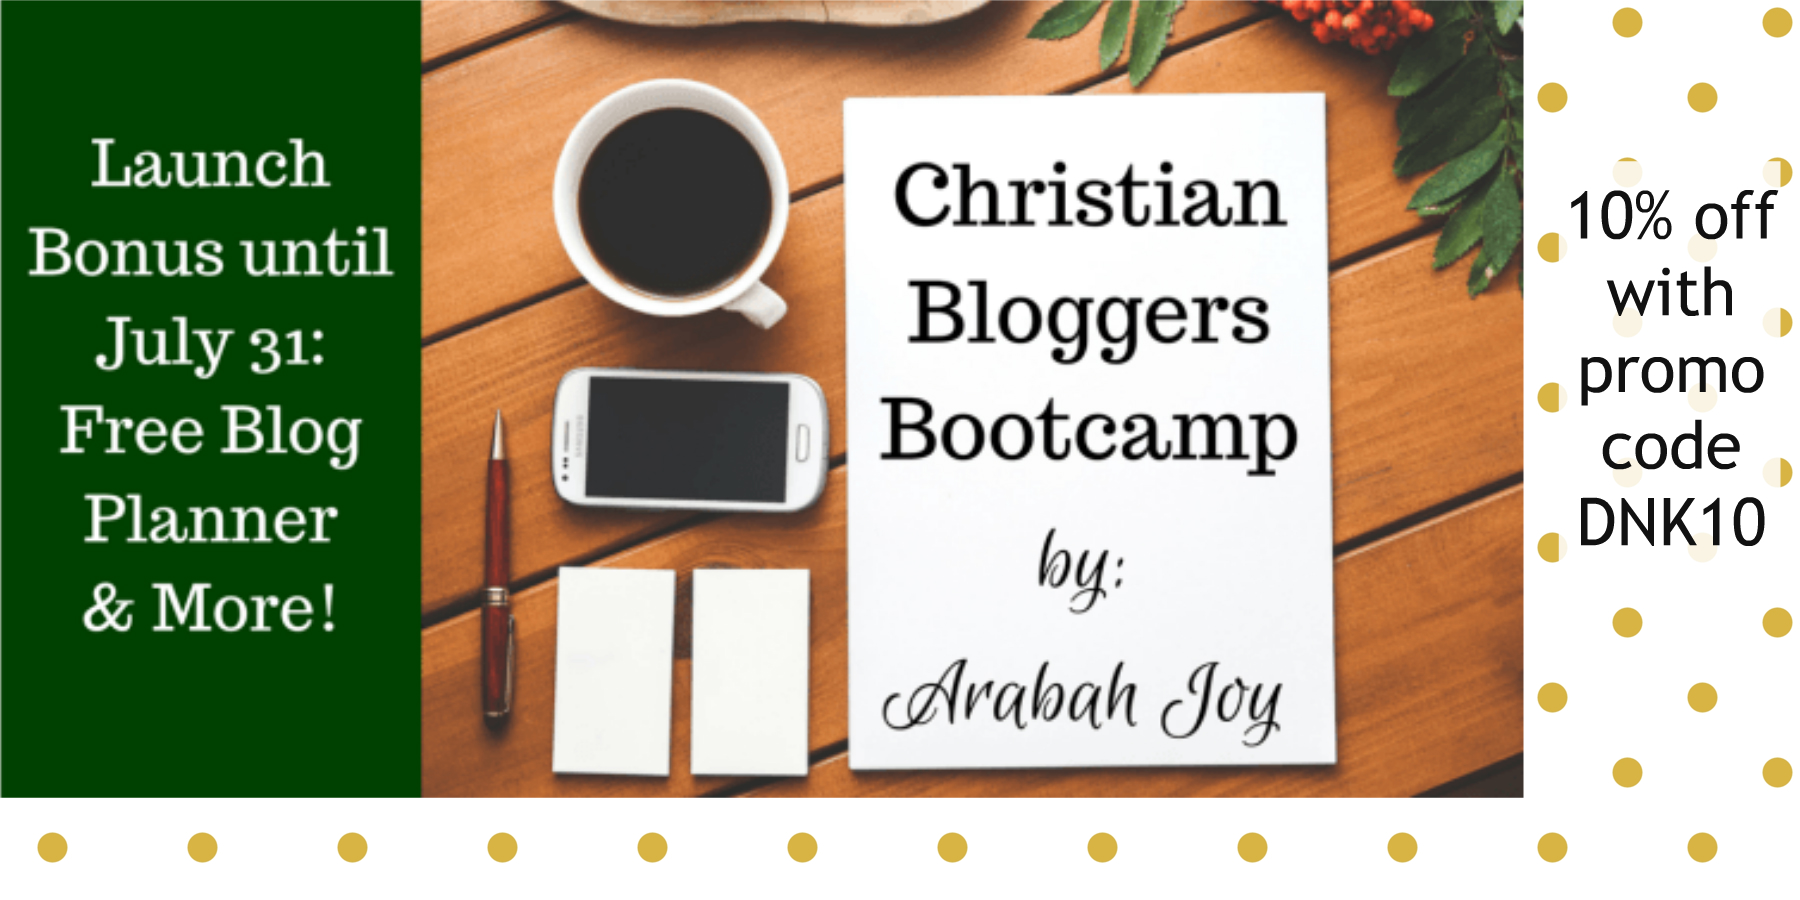 Christian Blogger Bootcamp 10% off promo code